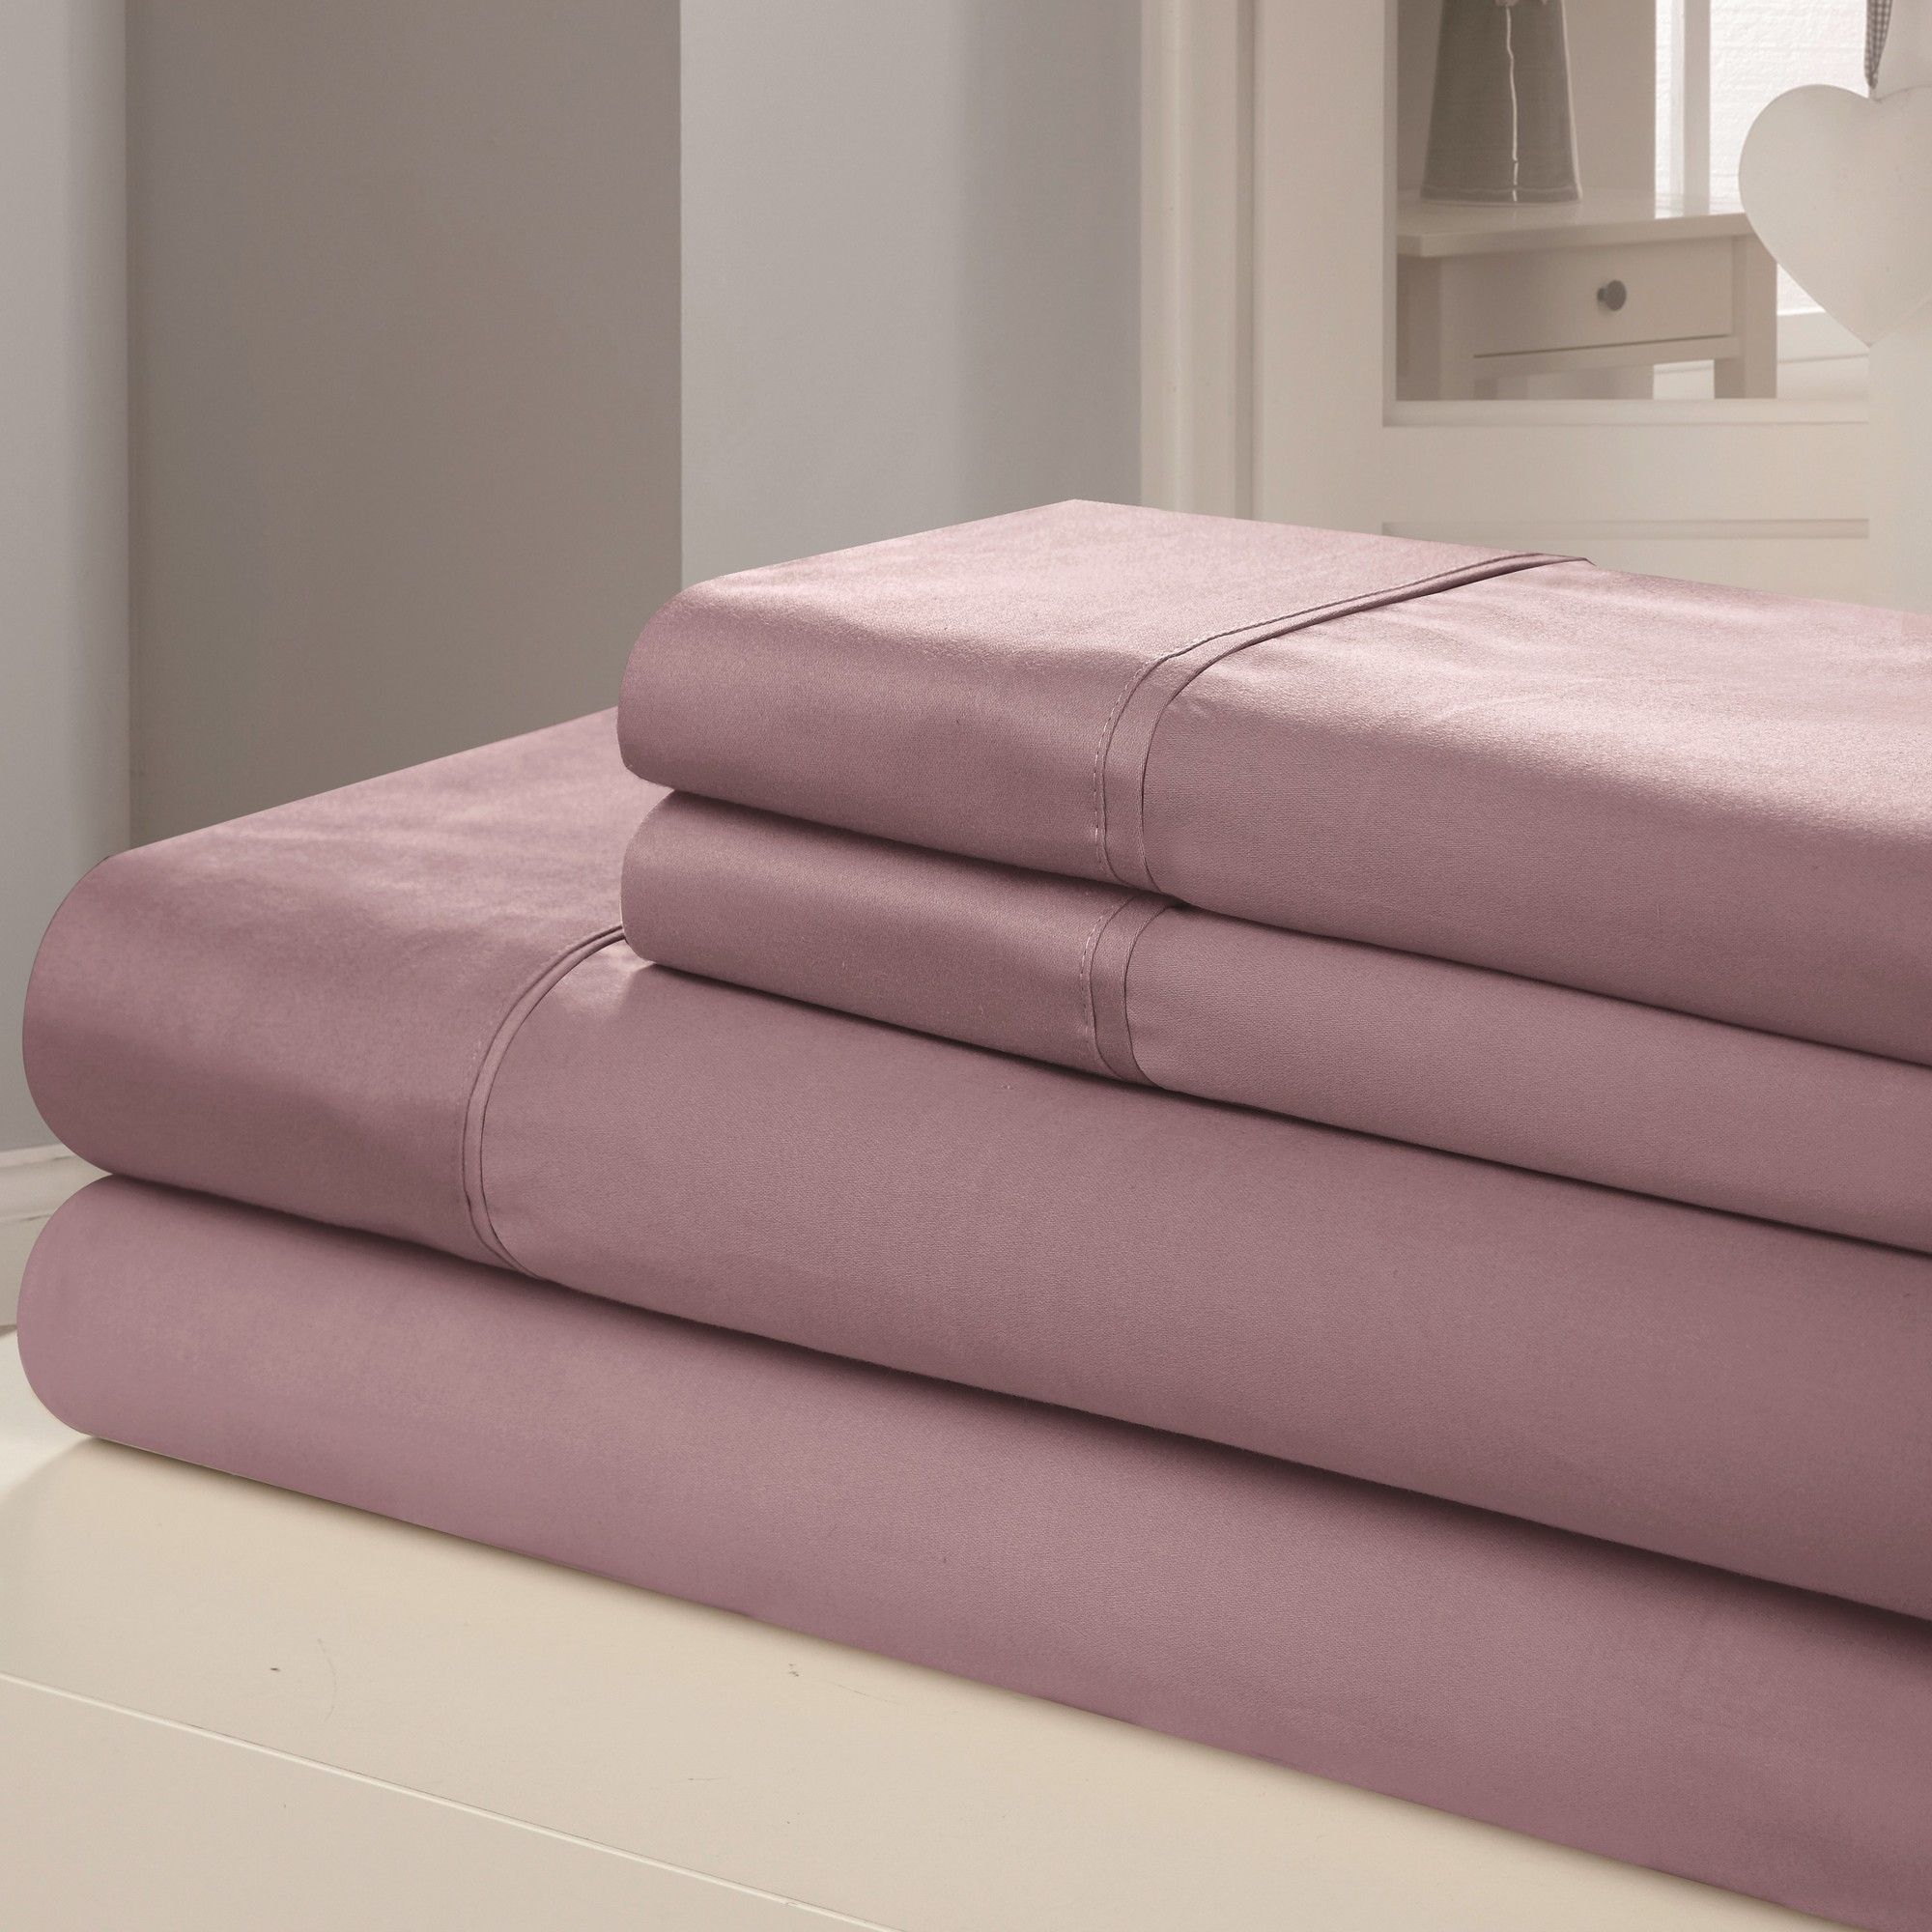 Pin by salina sparks on cotton best sheets for bed pinterest